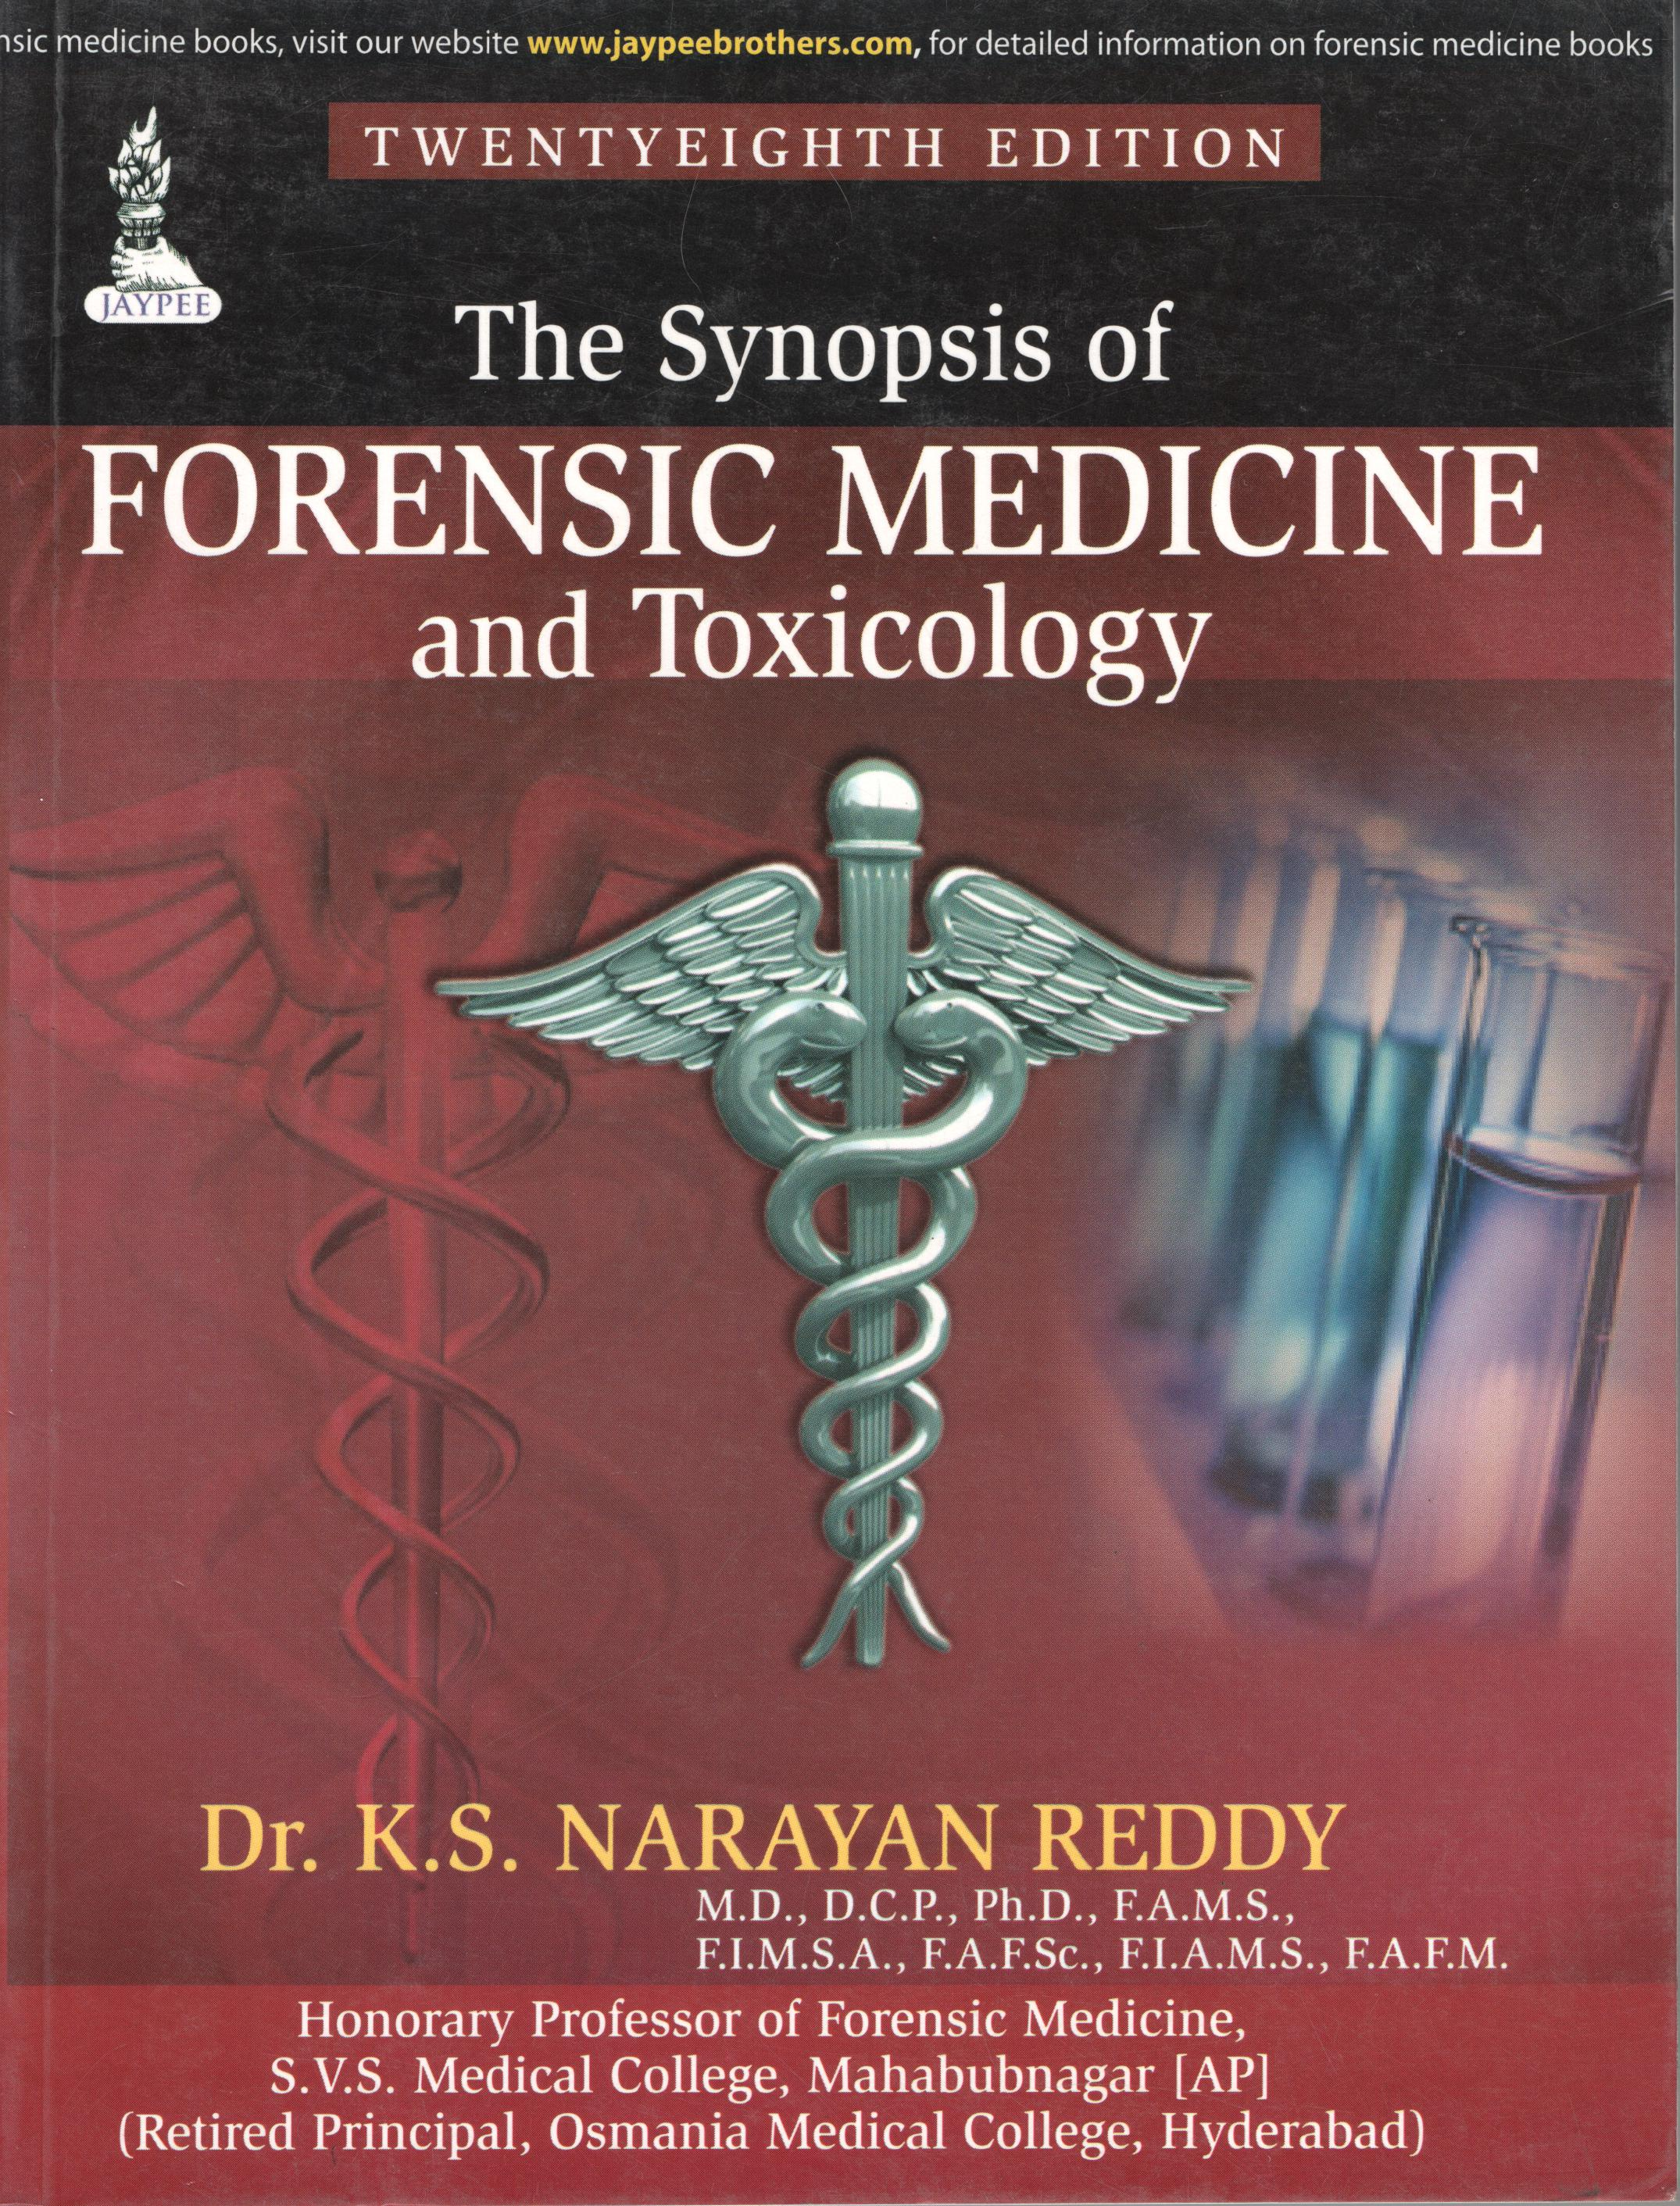 THE SYNOPSIS OF FORENSIC MEDICINE AND TOXICOLOGY